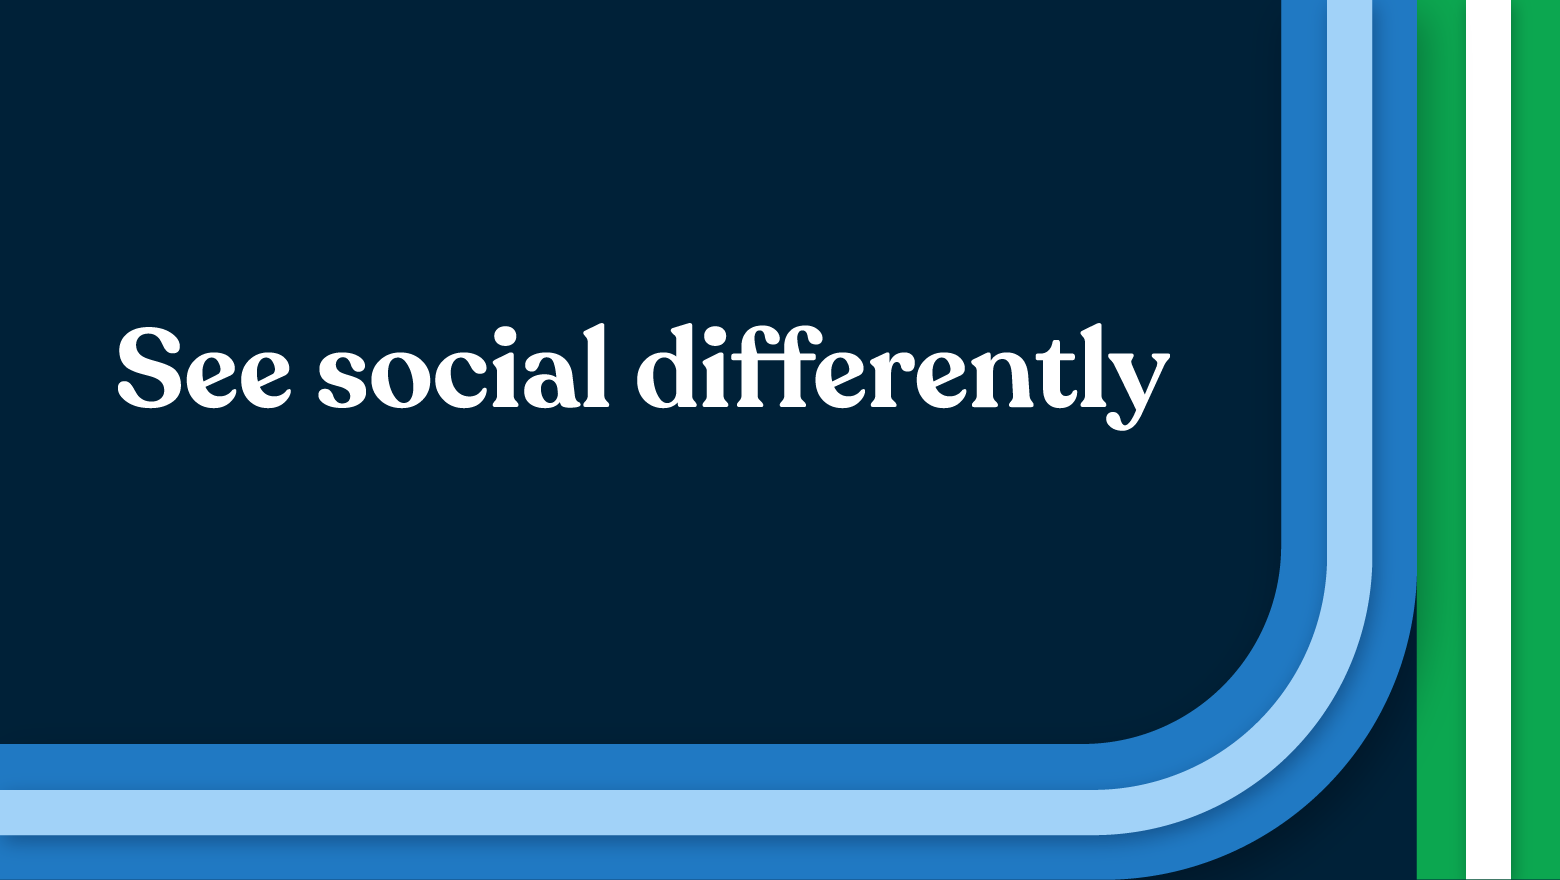 To drive business forward, we need to see social differently